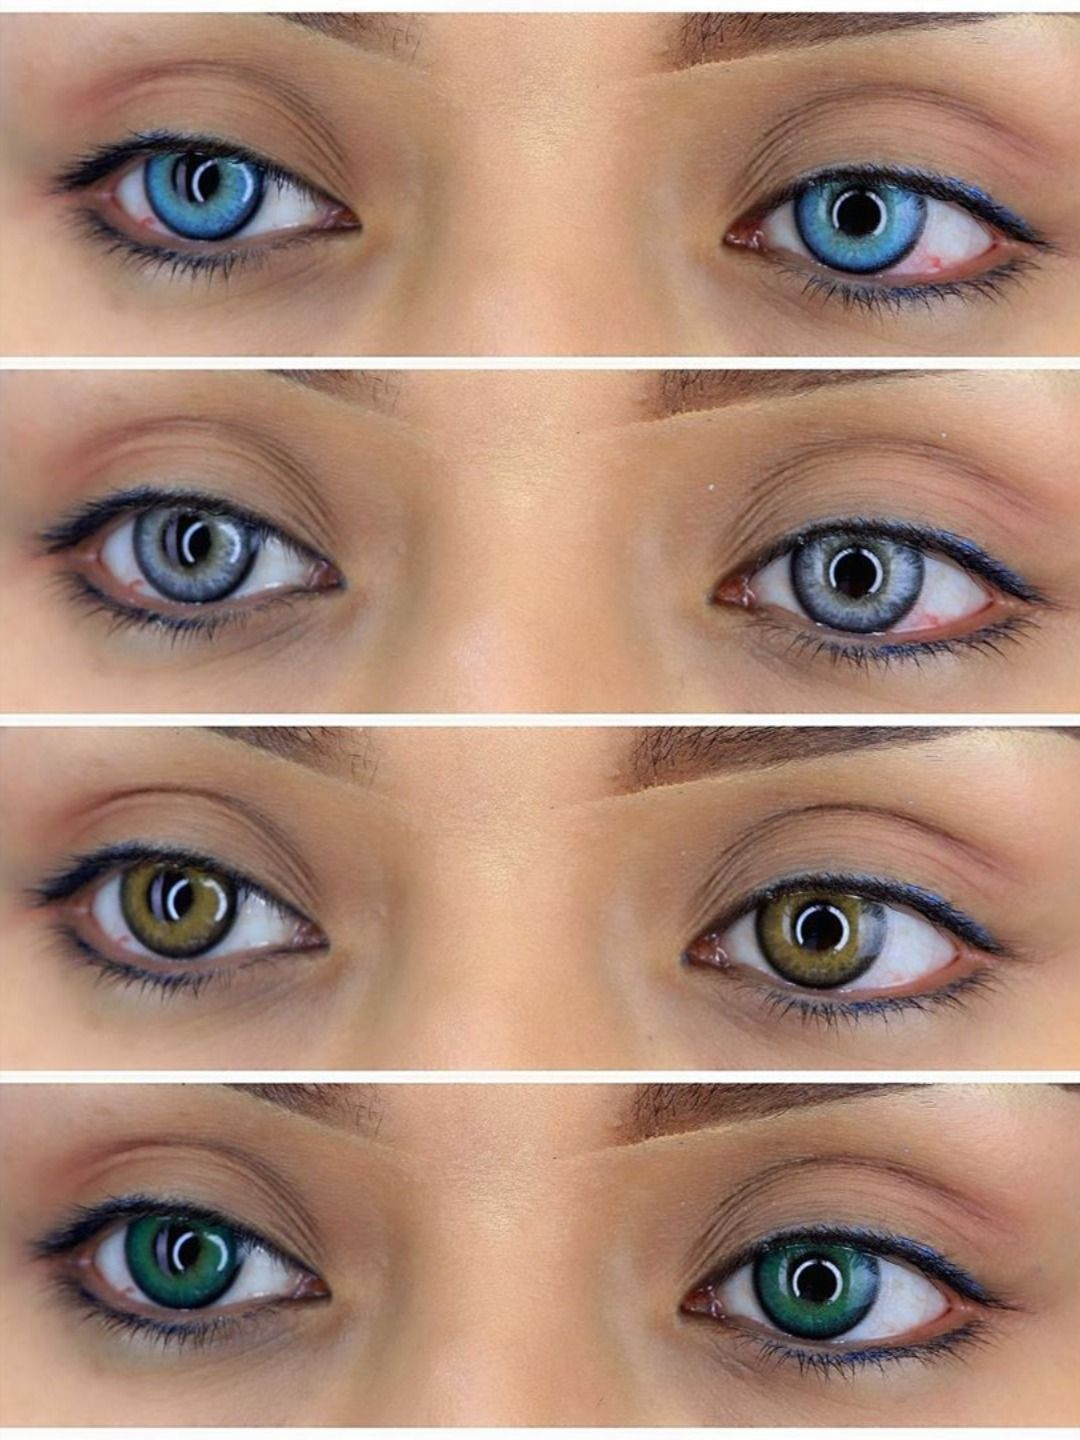 Ttdeye New Arrival Best Contacts For Any Color Contacts Colored Eye Contacts Eyeliner For Hooded Eyes Colored Contacts She cries in horror but lithop tries to stay calm and says. colored eye contacts eyeliner